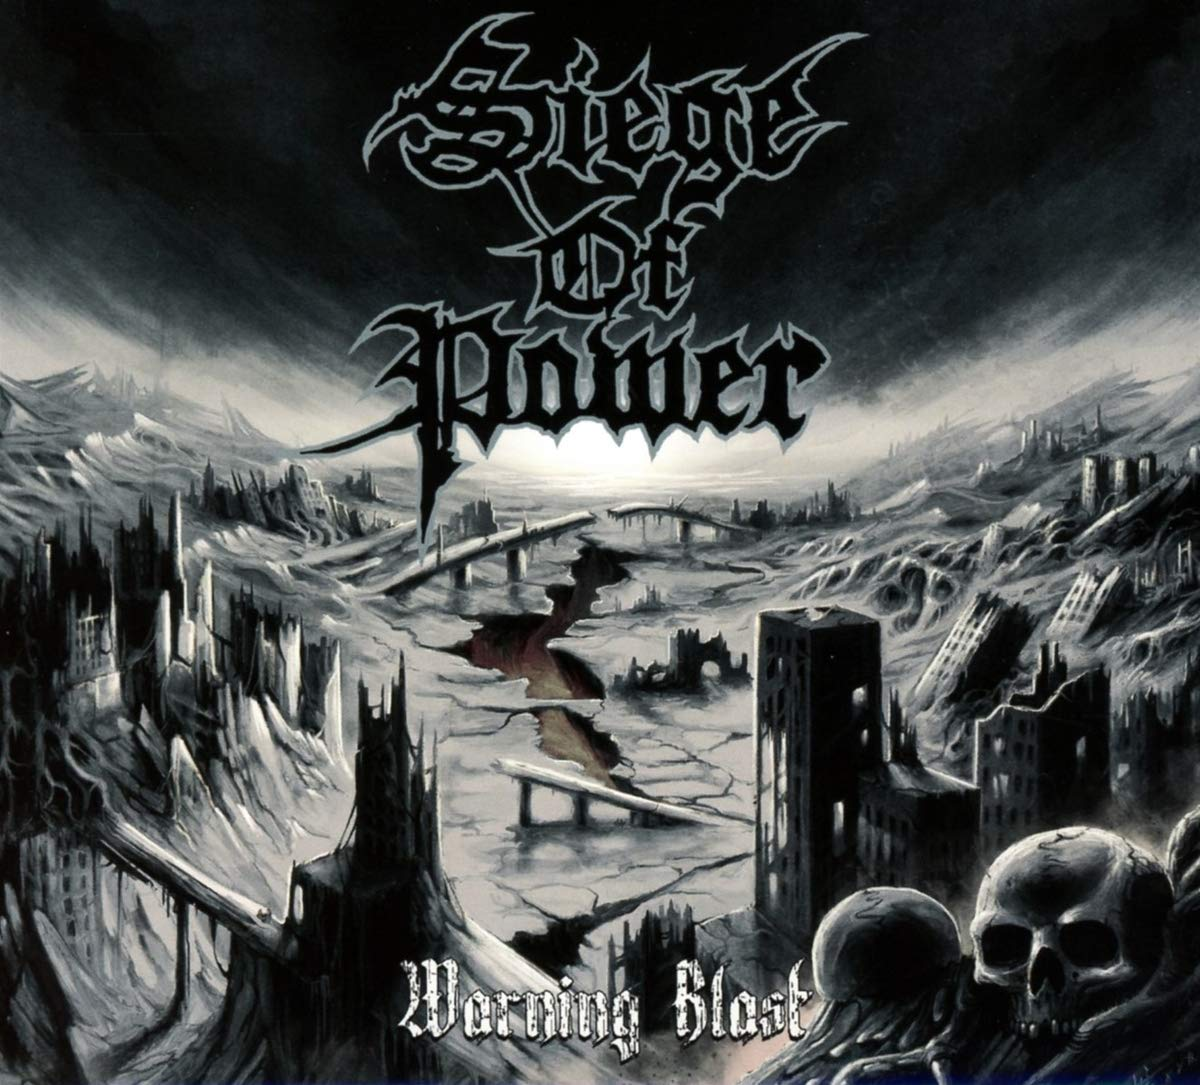 CD : Siege of Power - Warning Blast (Limited Edition, Digipack Packaging, United Kingdom - Import)